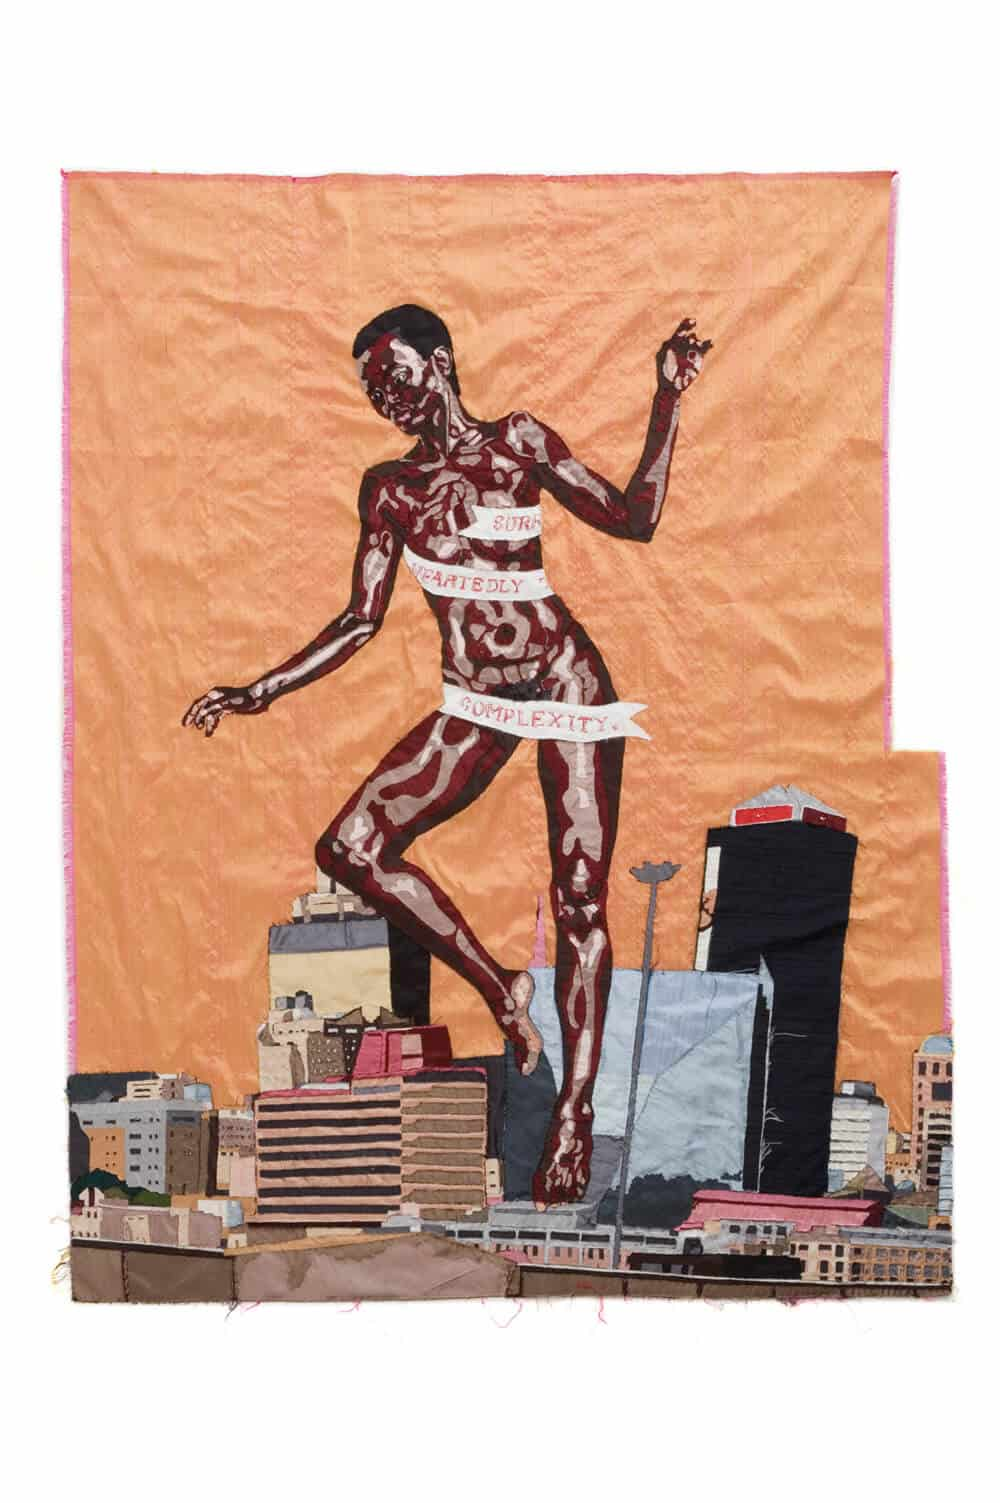 Billie Zangewa, The rebirth of the black venus, 2010. Silk tapestry, 127x103cm. Courtesy of the artist & blank projects.